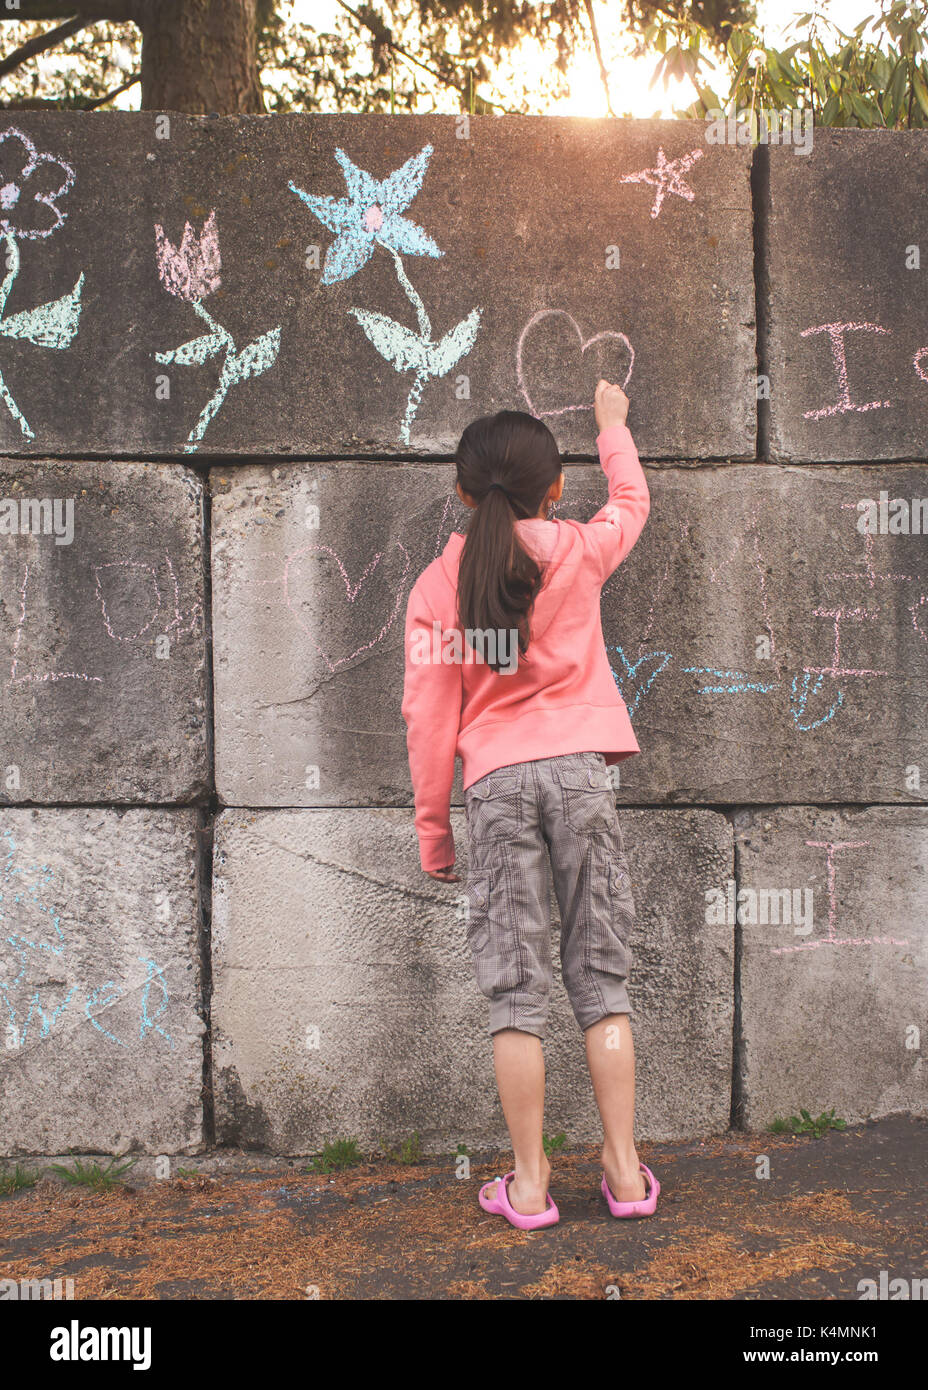 10 year old, little girl, elementary age, drawing and writing with chalk on concrete. - Stock Image